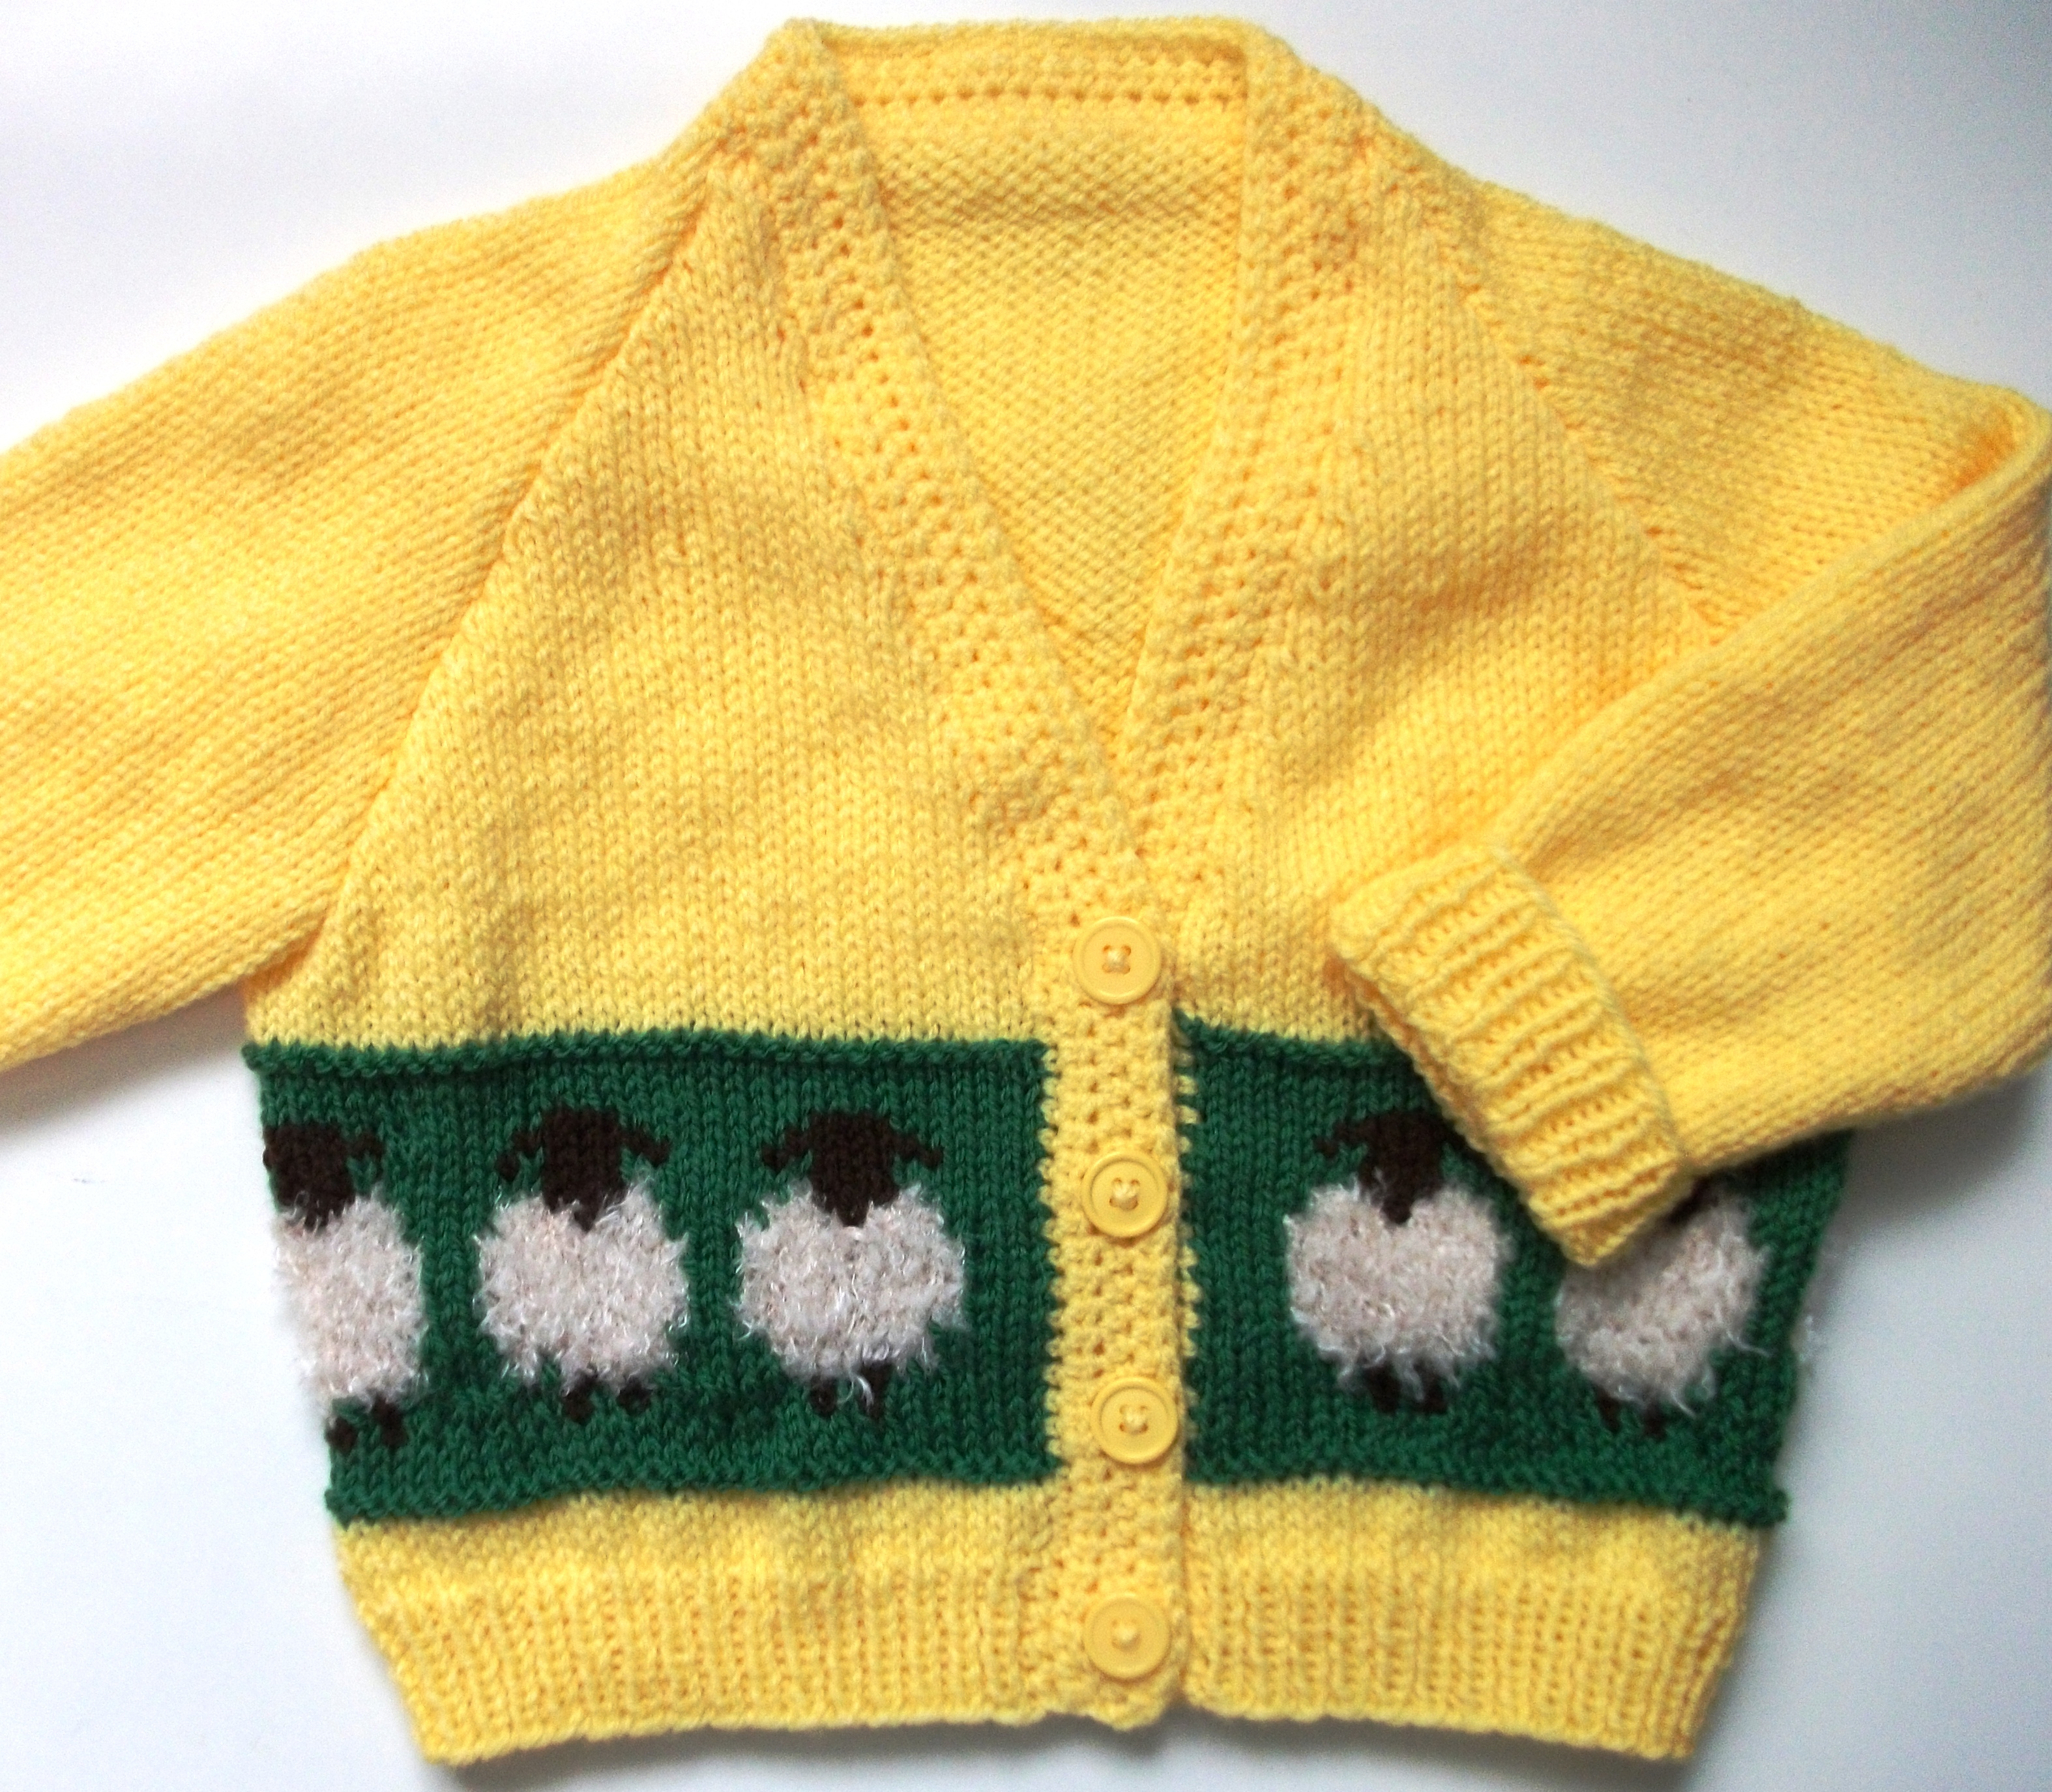 Sheepy Cardigan for Girls and Boys-detailed knitting pattern